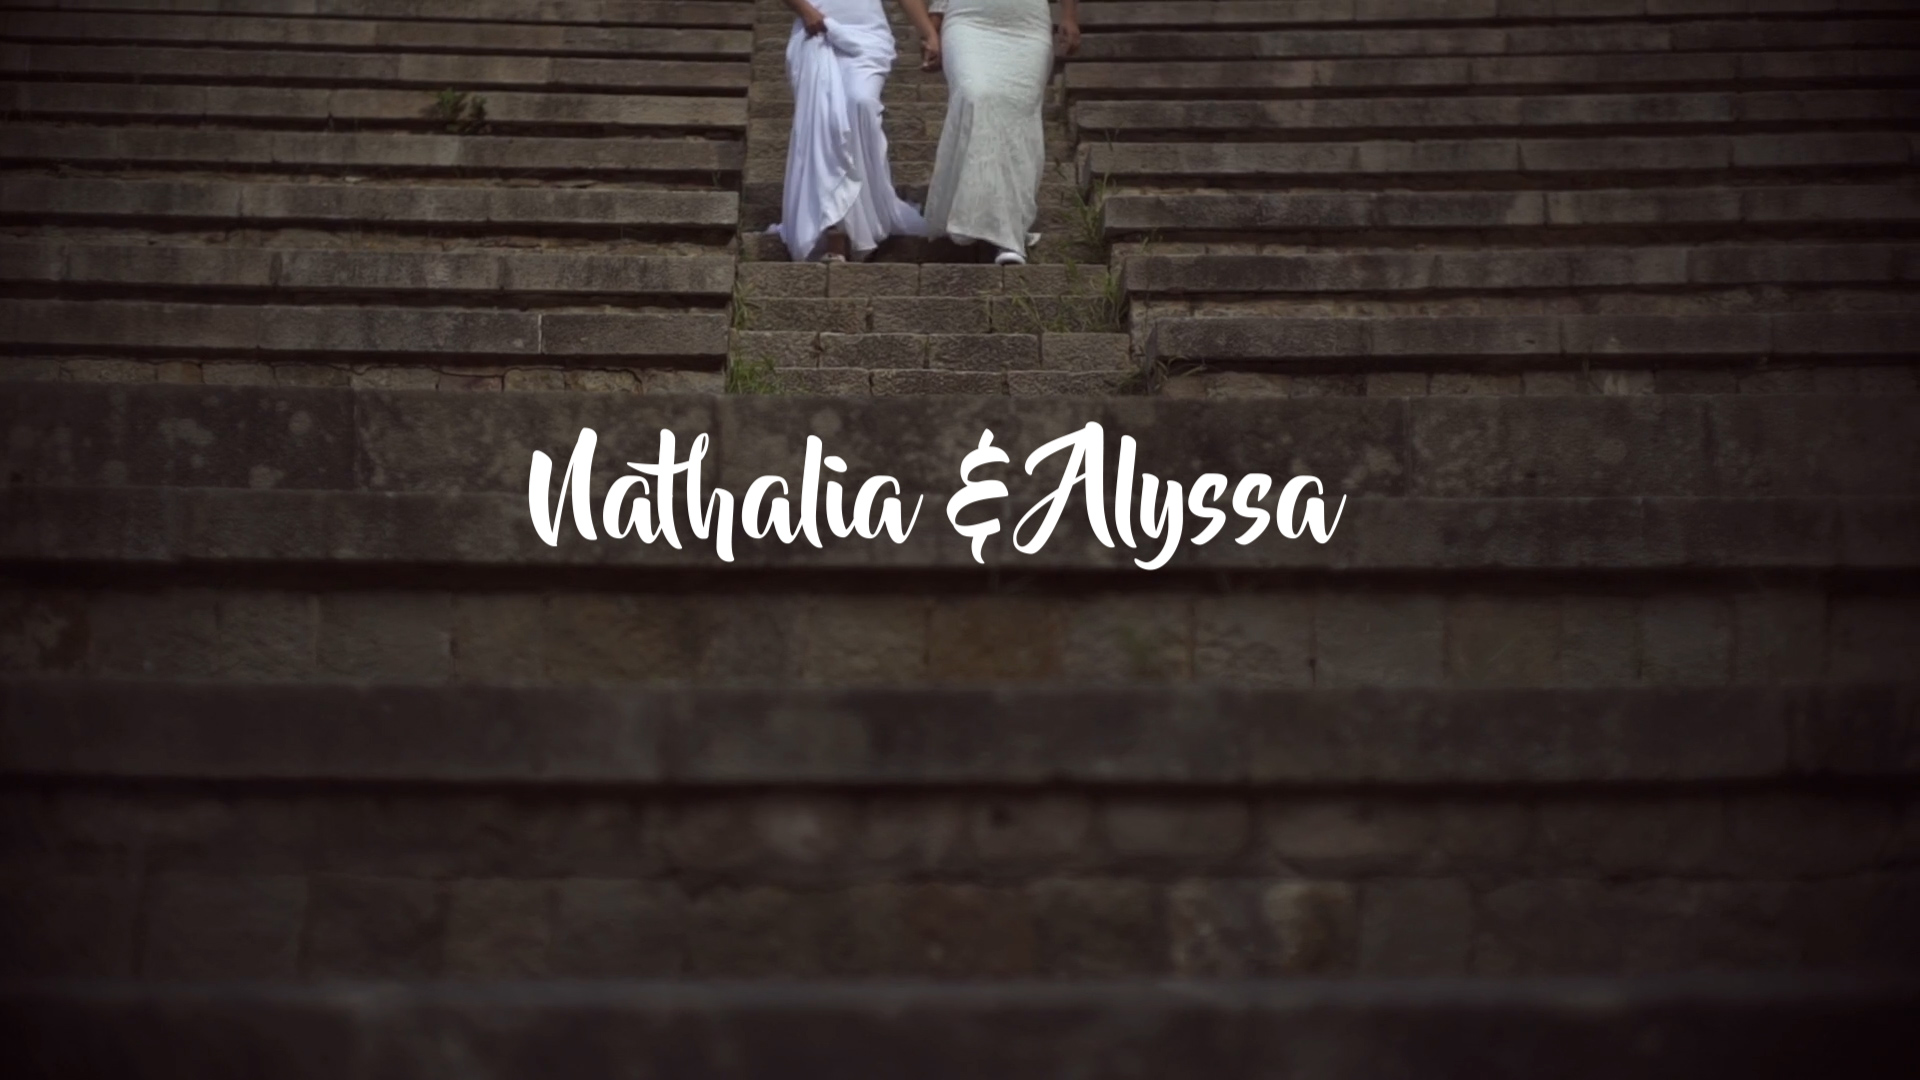 Nathalia + Alyssa | Barcelona, Spain | La Florida